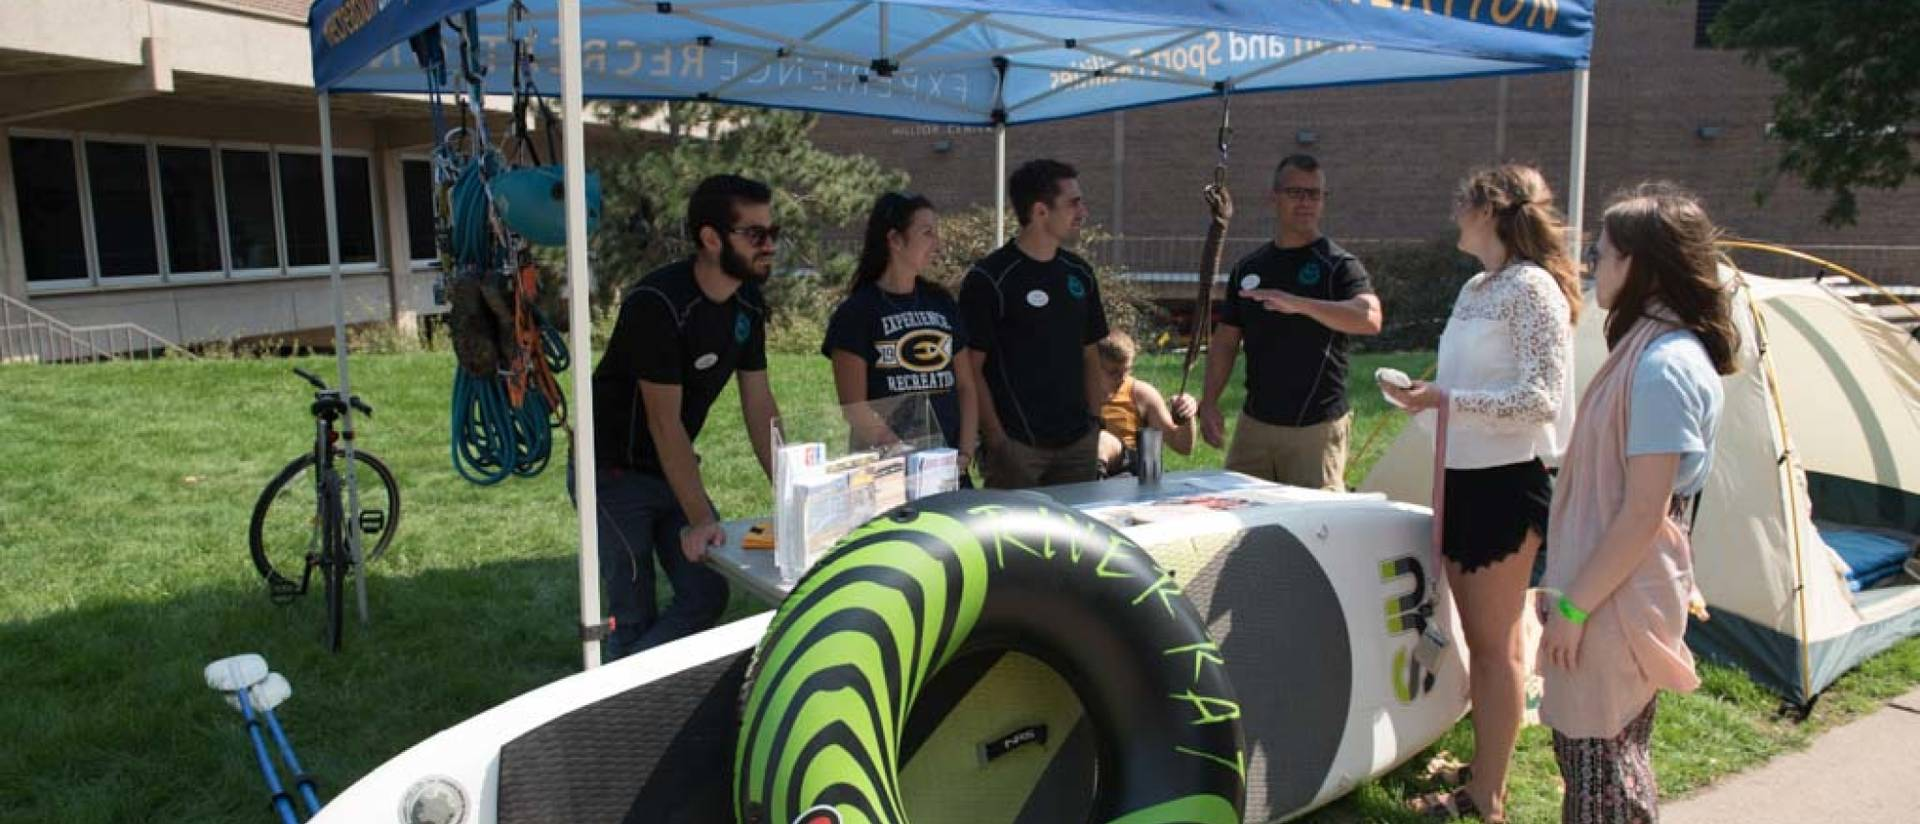 UWEC Students staffing tent at 2017 Tour-de-Rec event